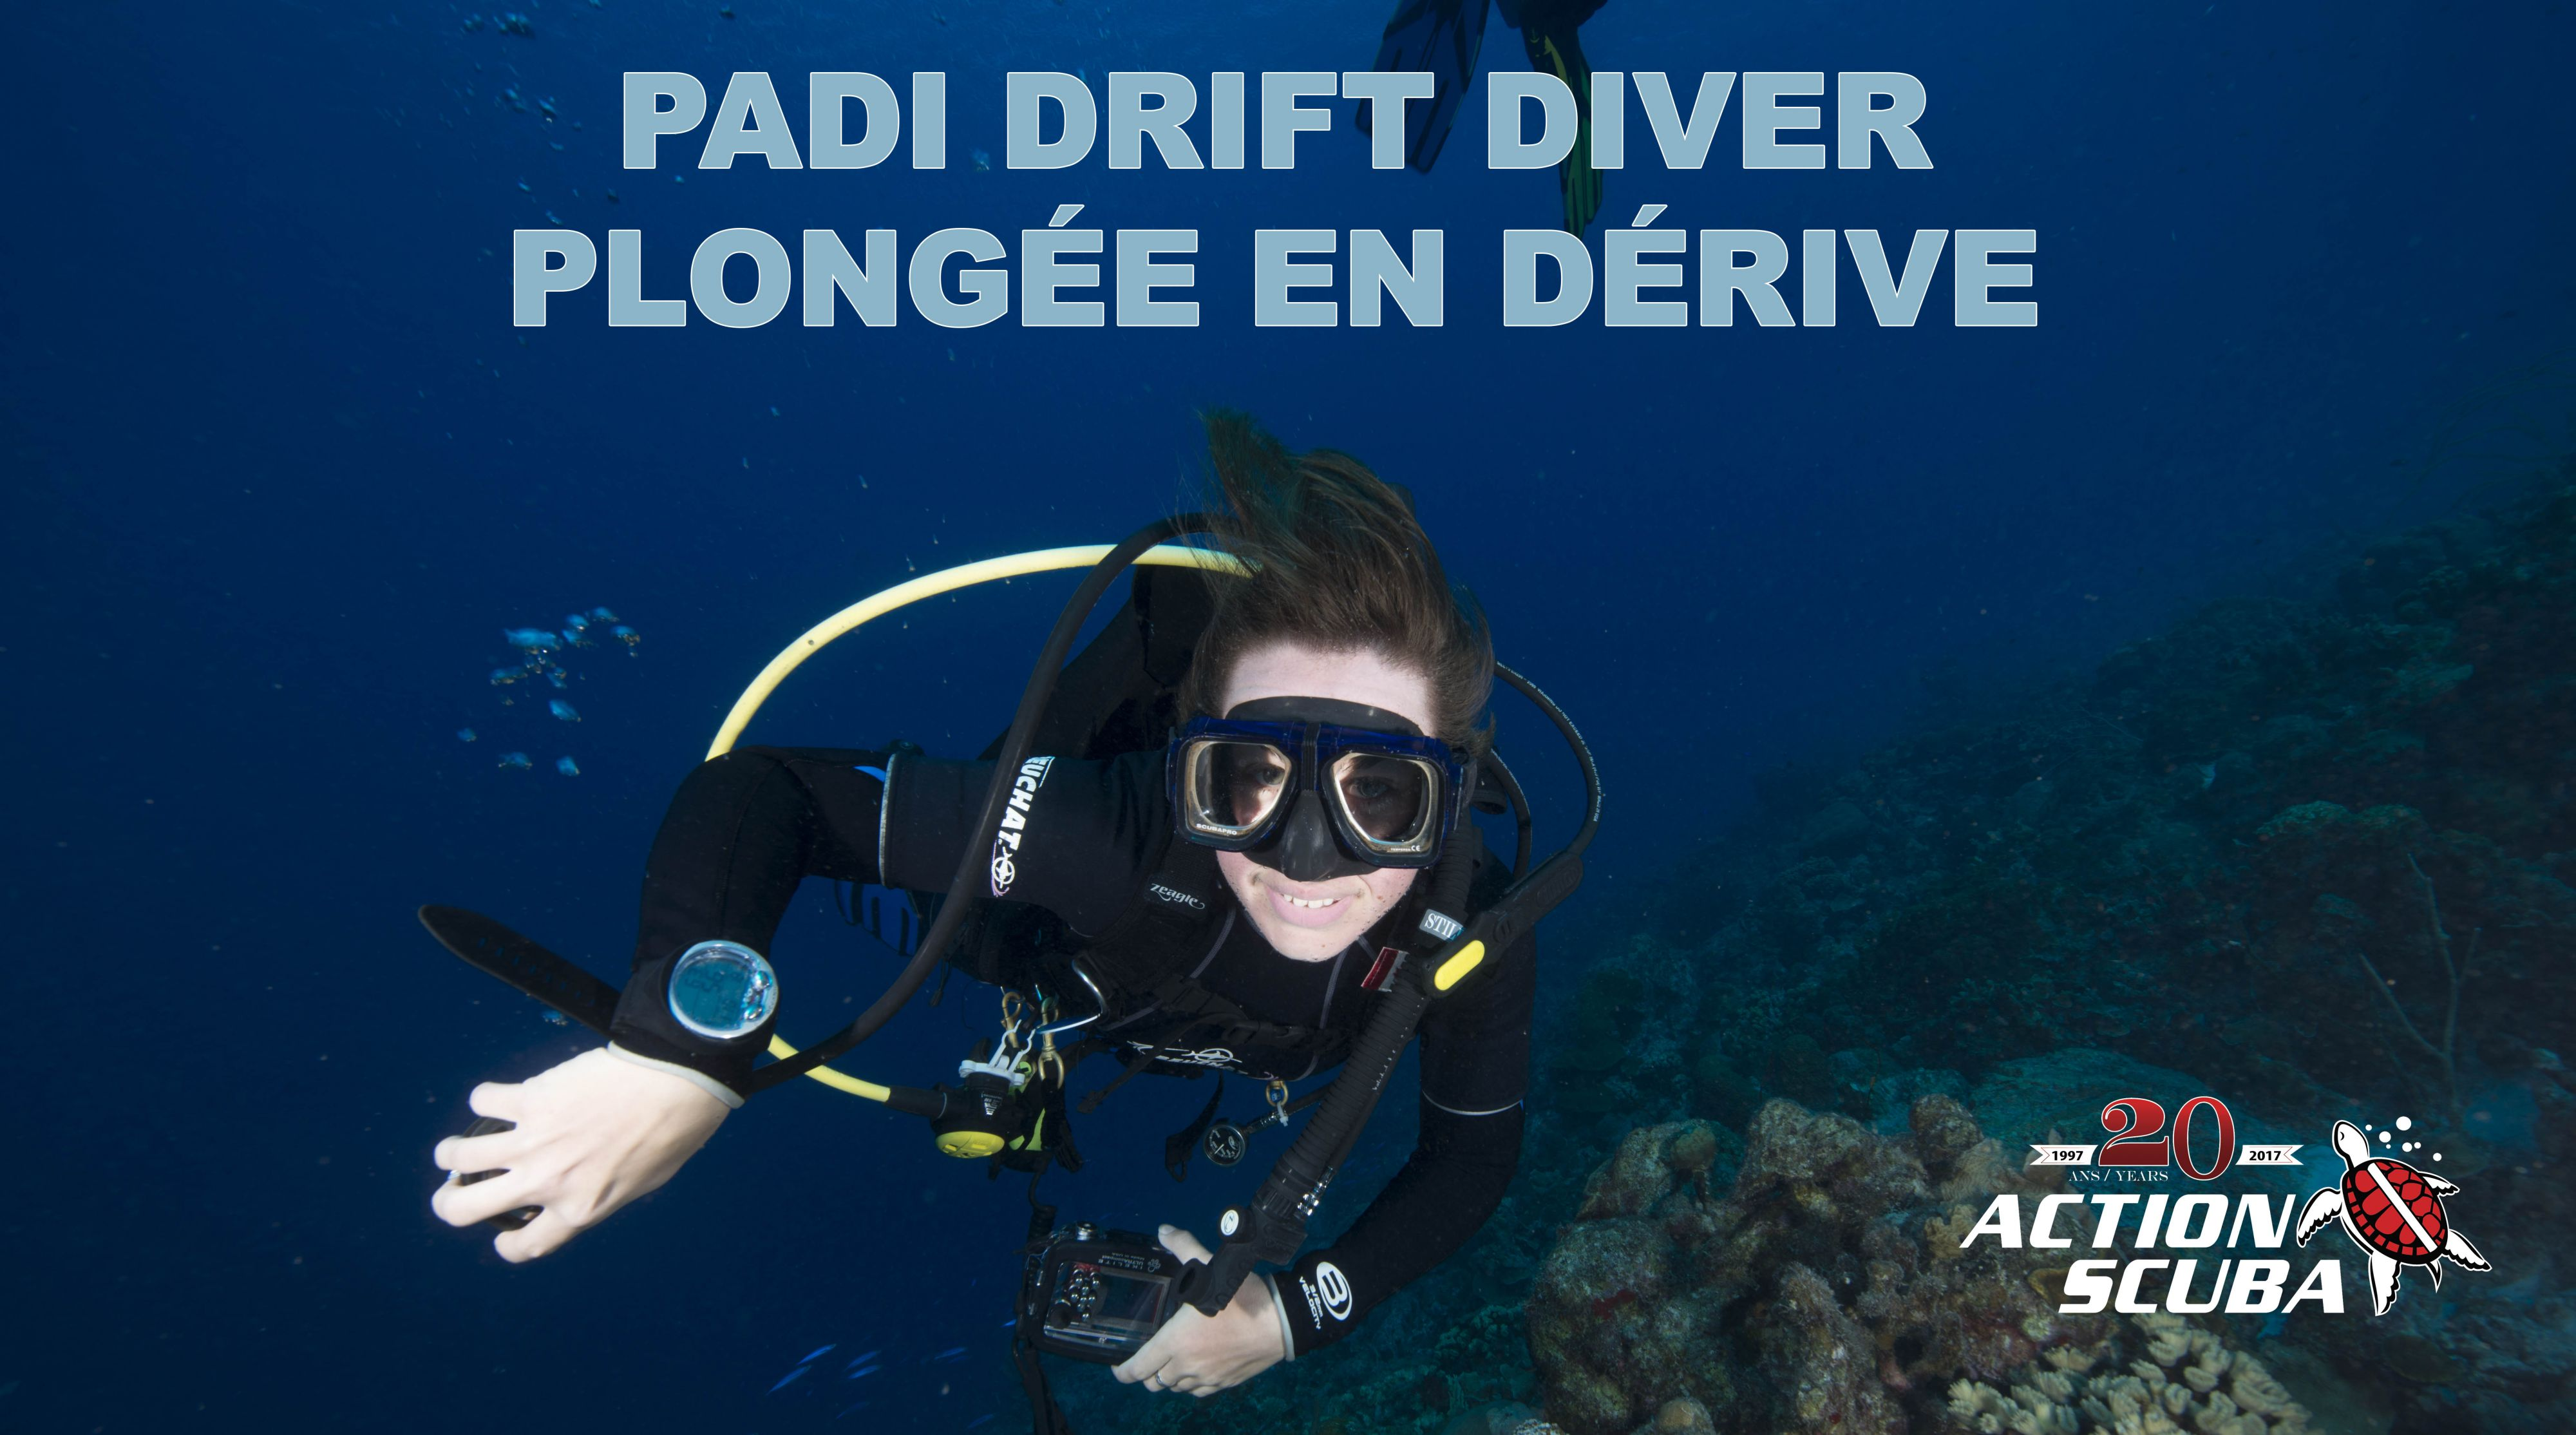 PADI Drift Diver course montreal brockville